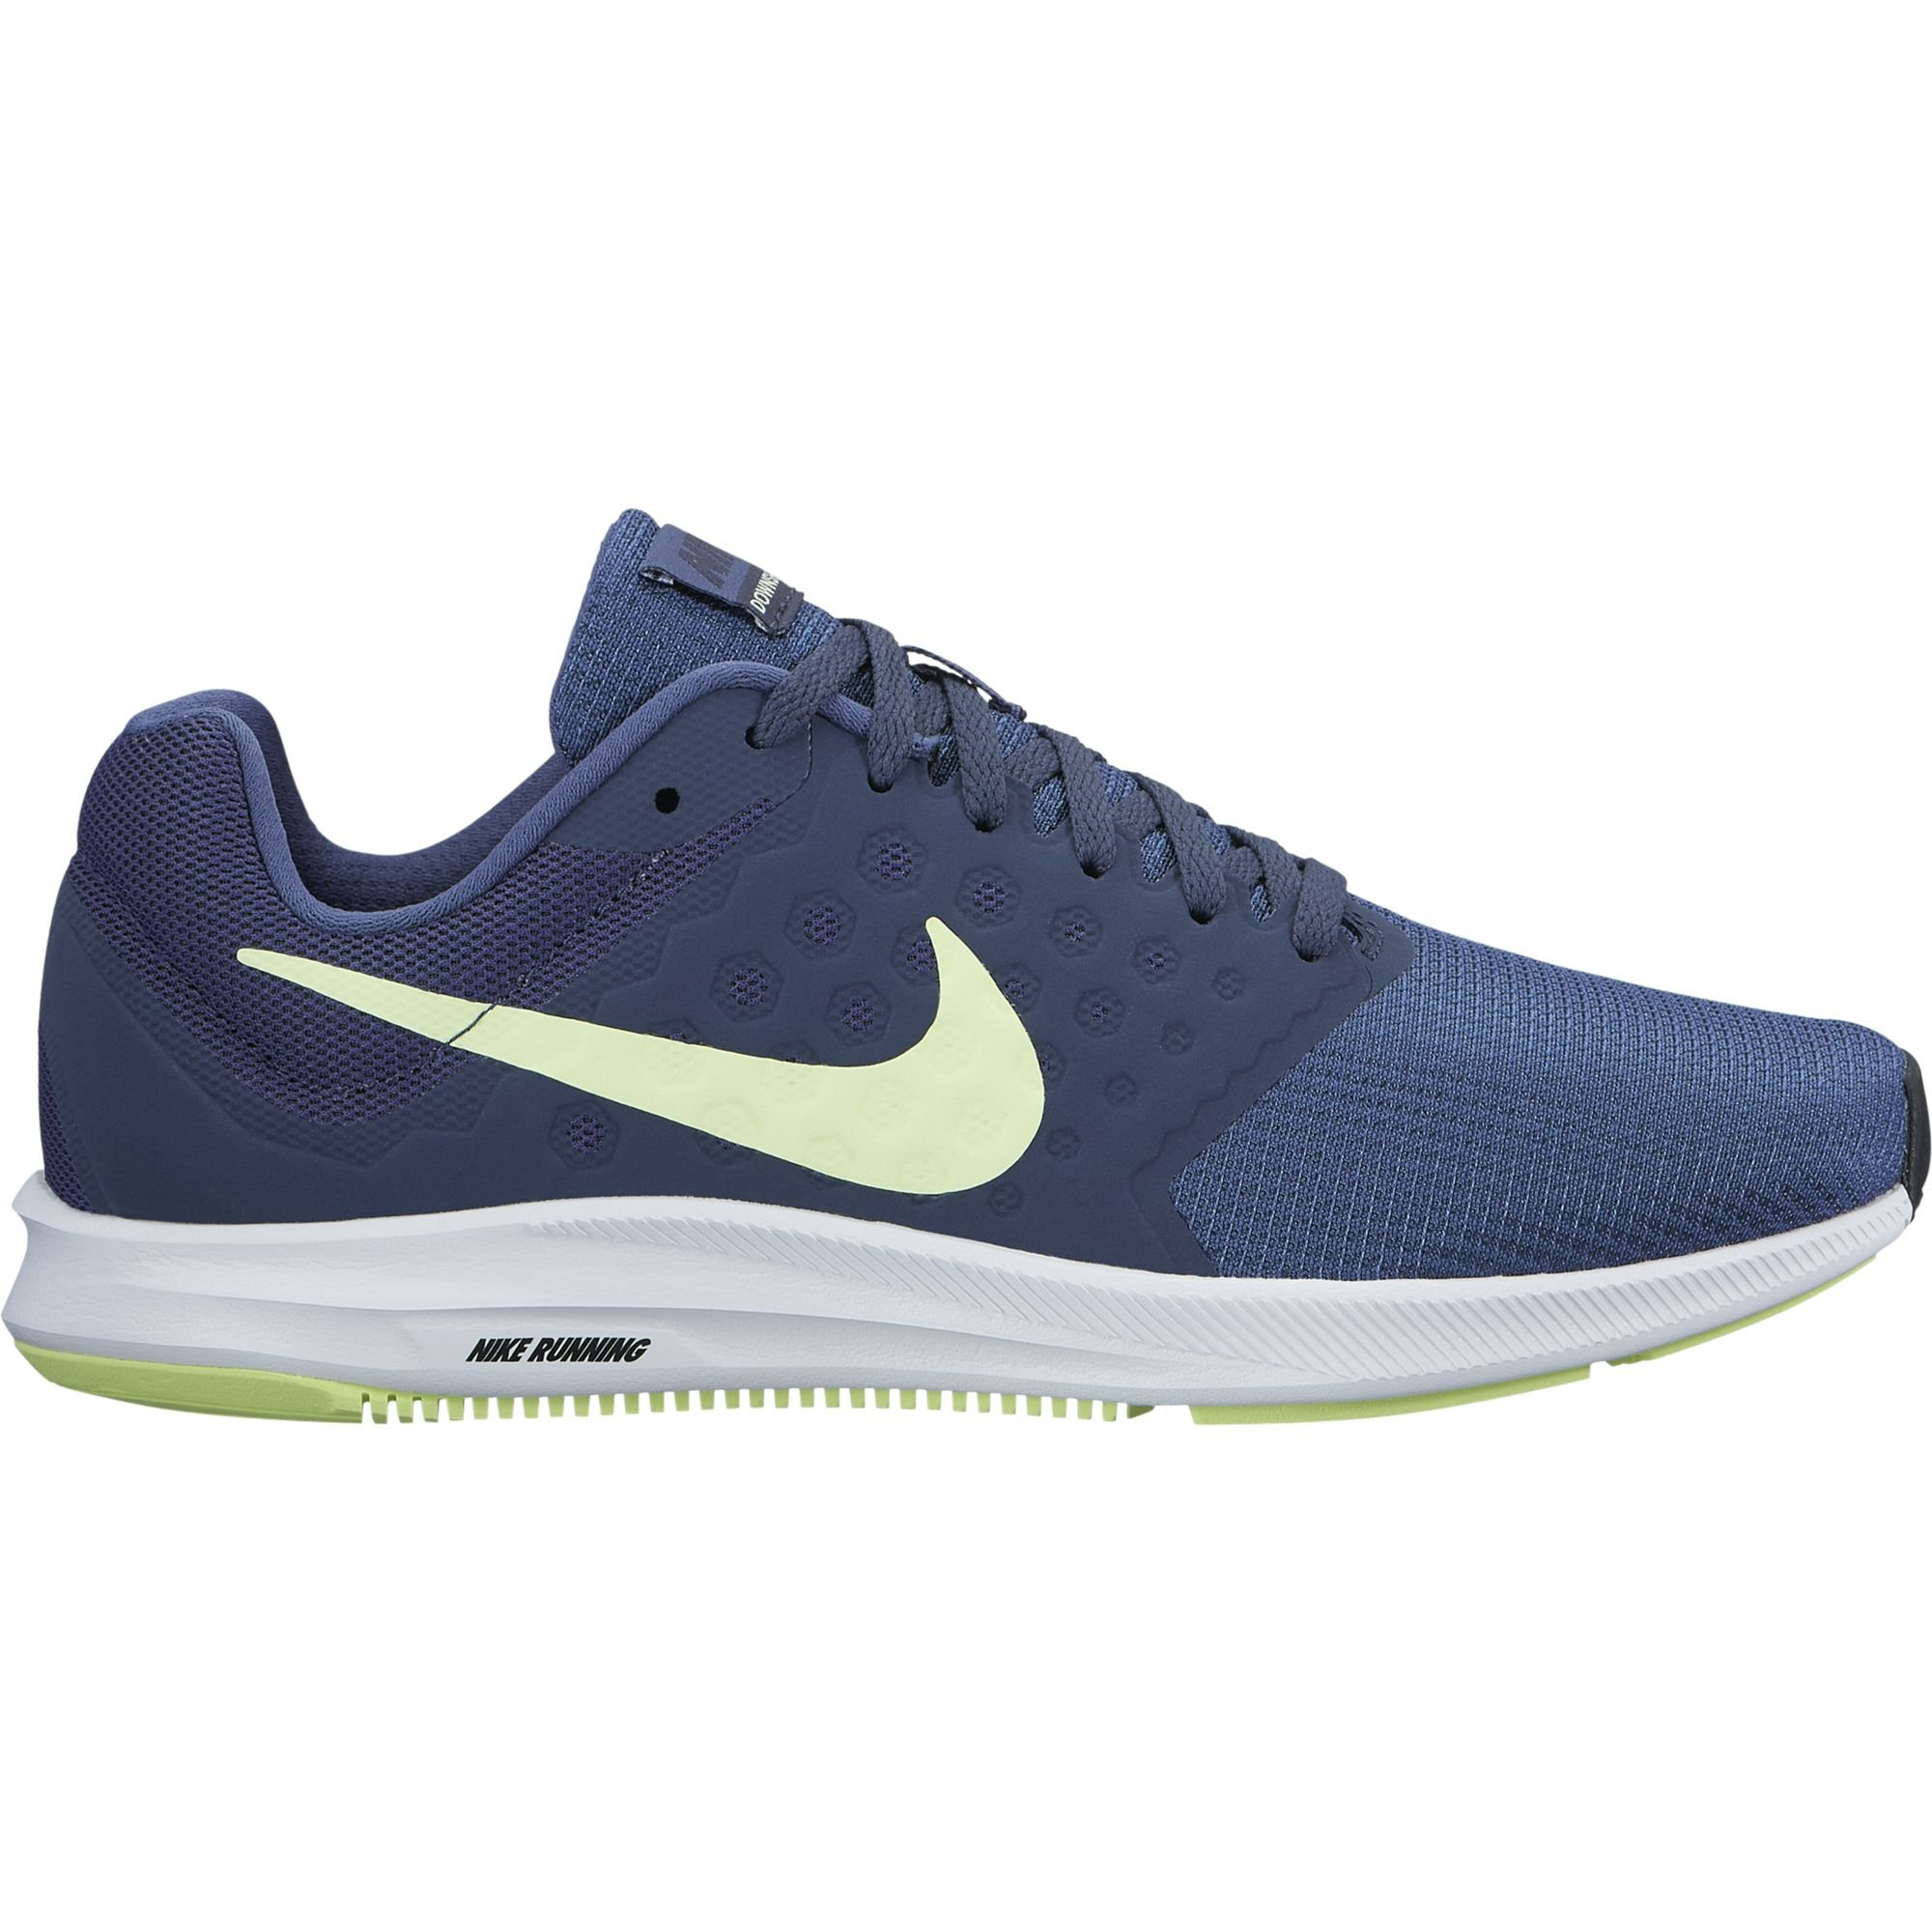 9b4cecfd48dd Galleon - NIKE Women s Downshifter 7 Running Shoe Blue Recall Barely  Volt Thunder Blue Size 7.5 M US